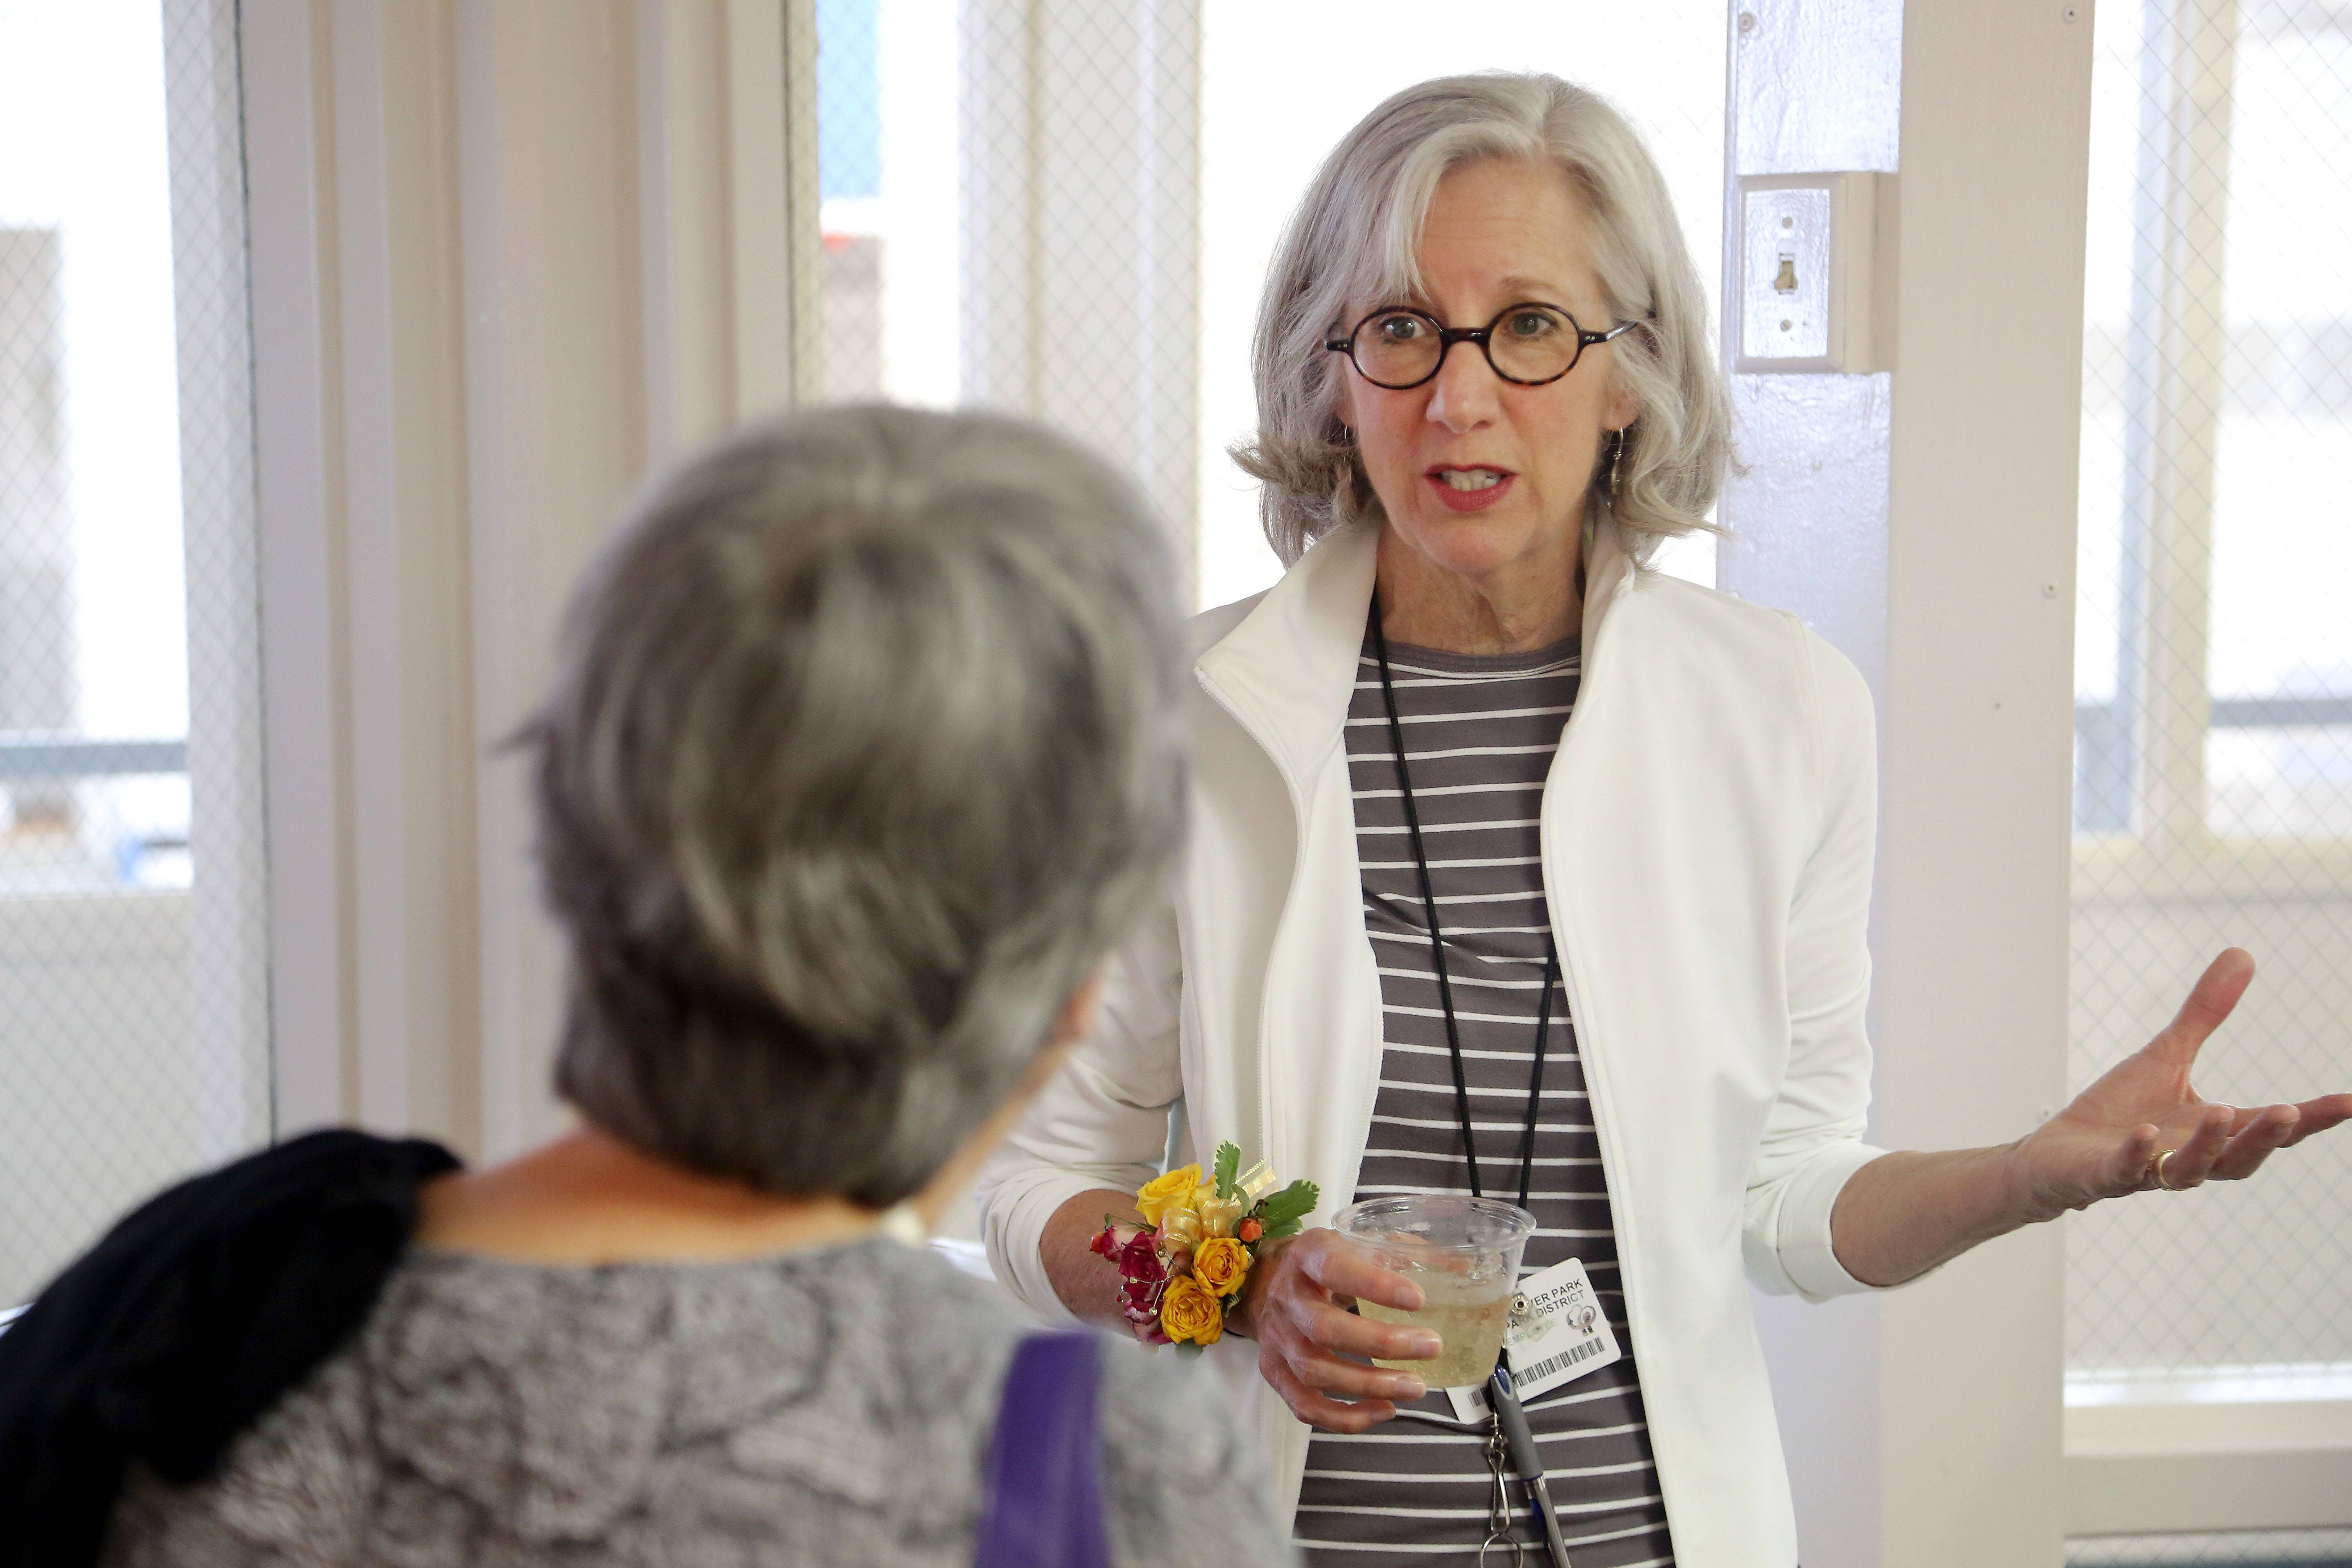 Susan Matthews, right, talks with Eileen Lucietto of Bartlett during a gallery opening in June for Roselle artist Paulina Engel at the Hanover Park Park District gallery. Matthews has retired from her job as cultural arts director for the Hanover Park Park District. The gallery is being renamed after Matthews.